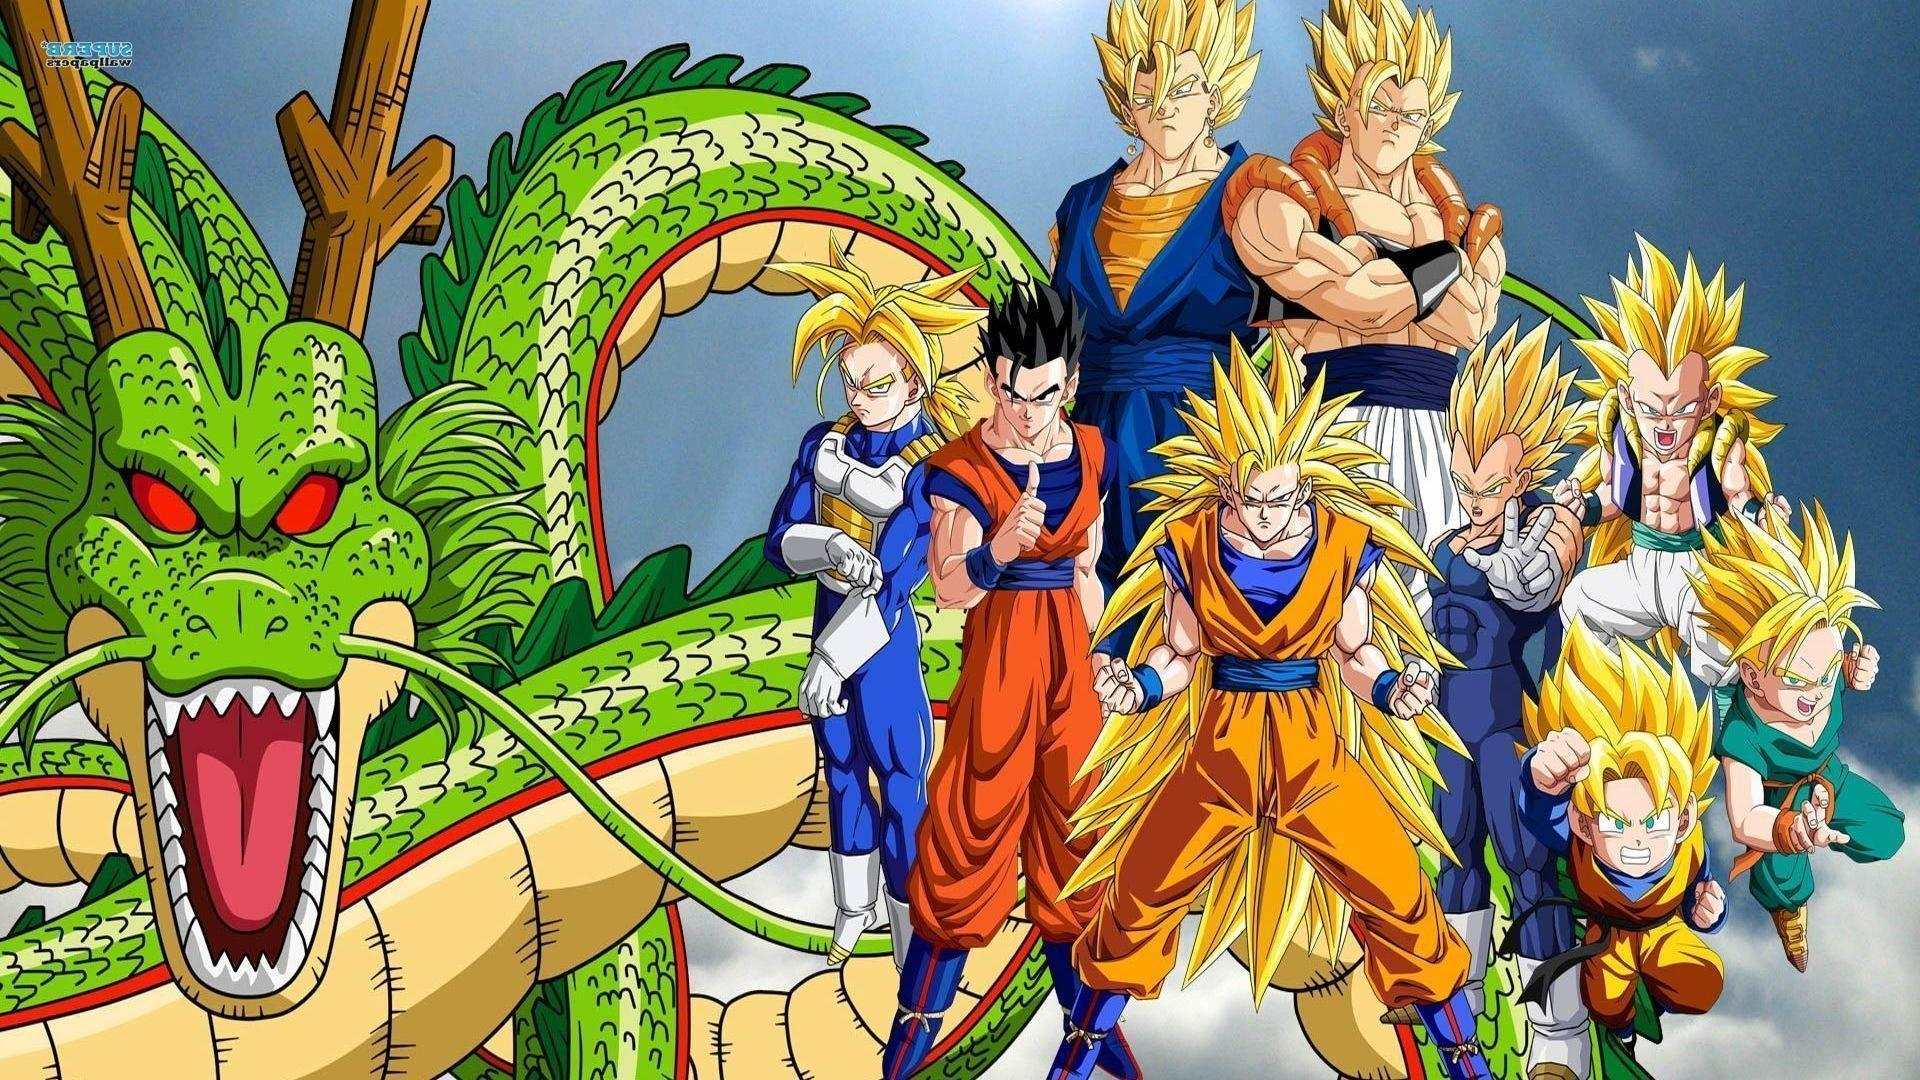 Cool dragon ball z wallpapers wallpaper cave for Portefeuille dragon ball z